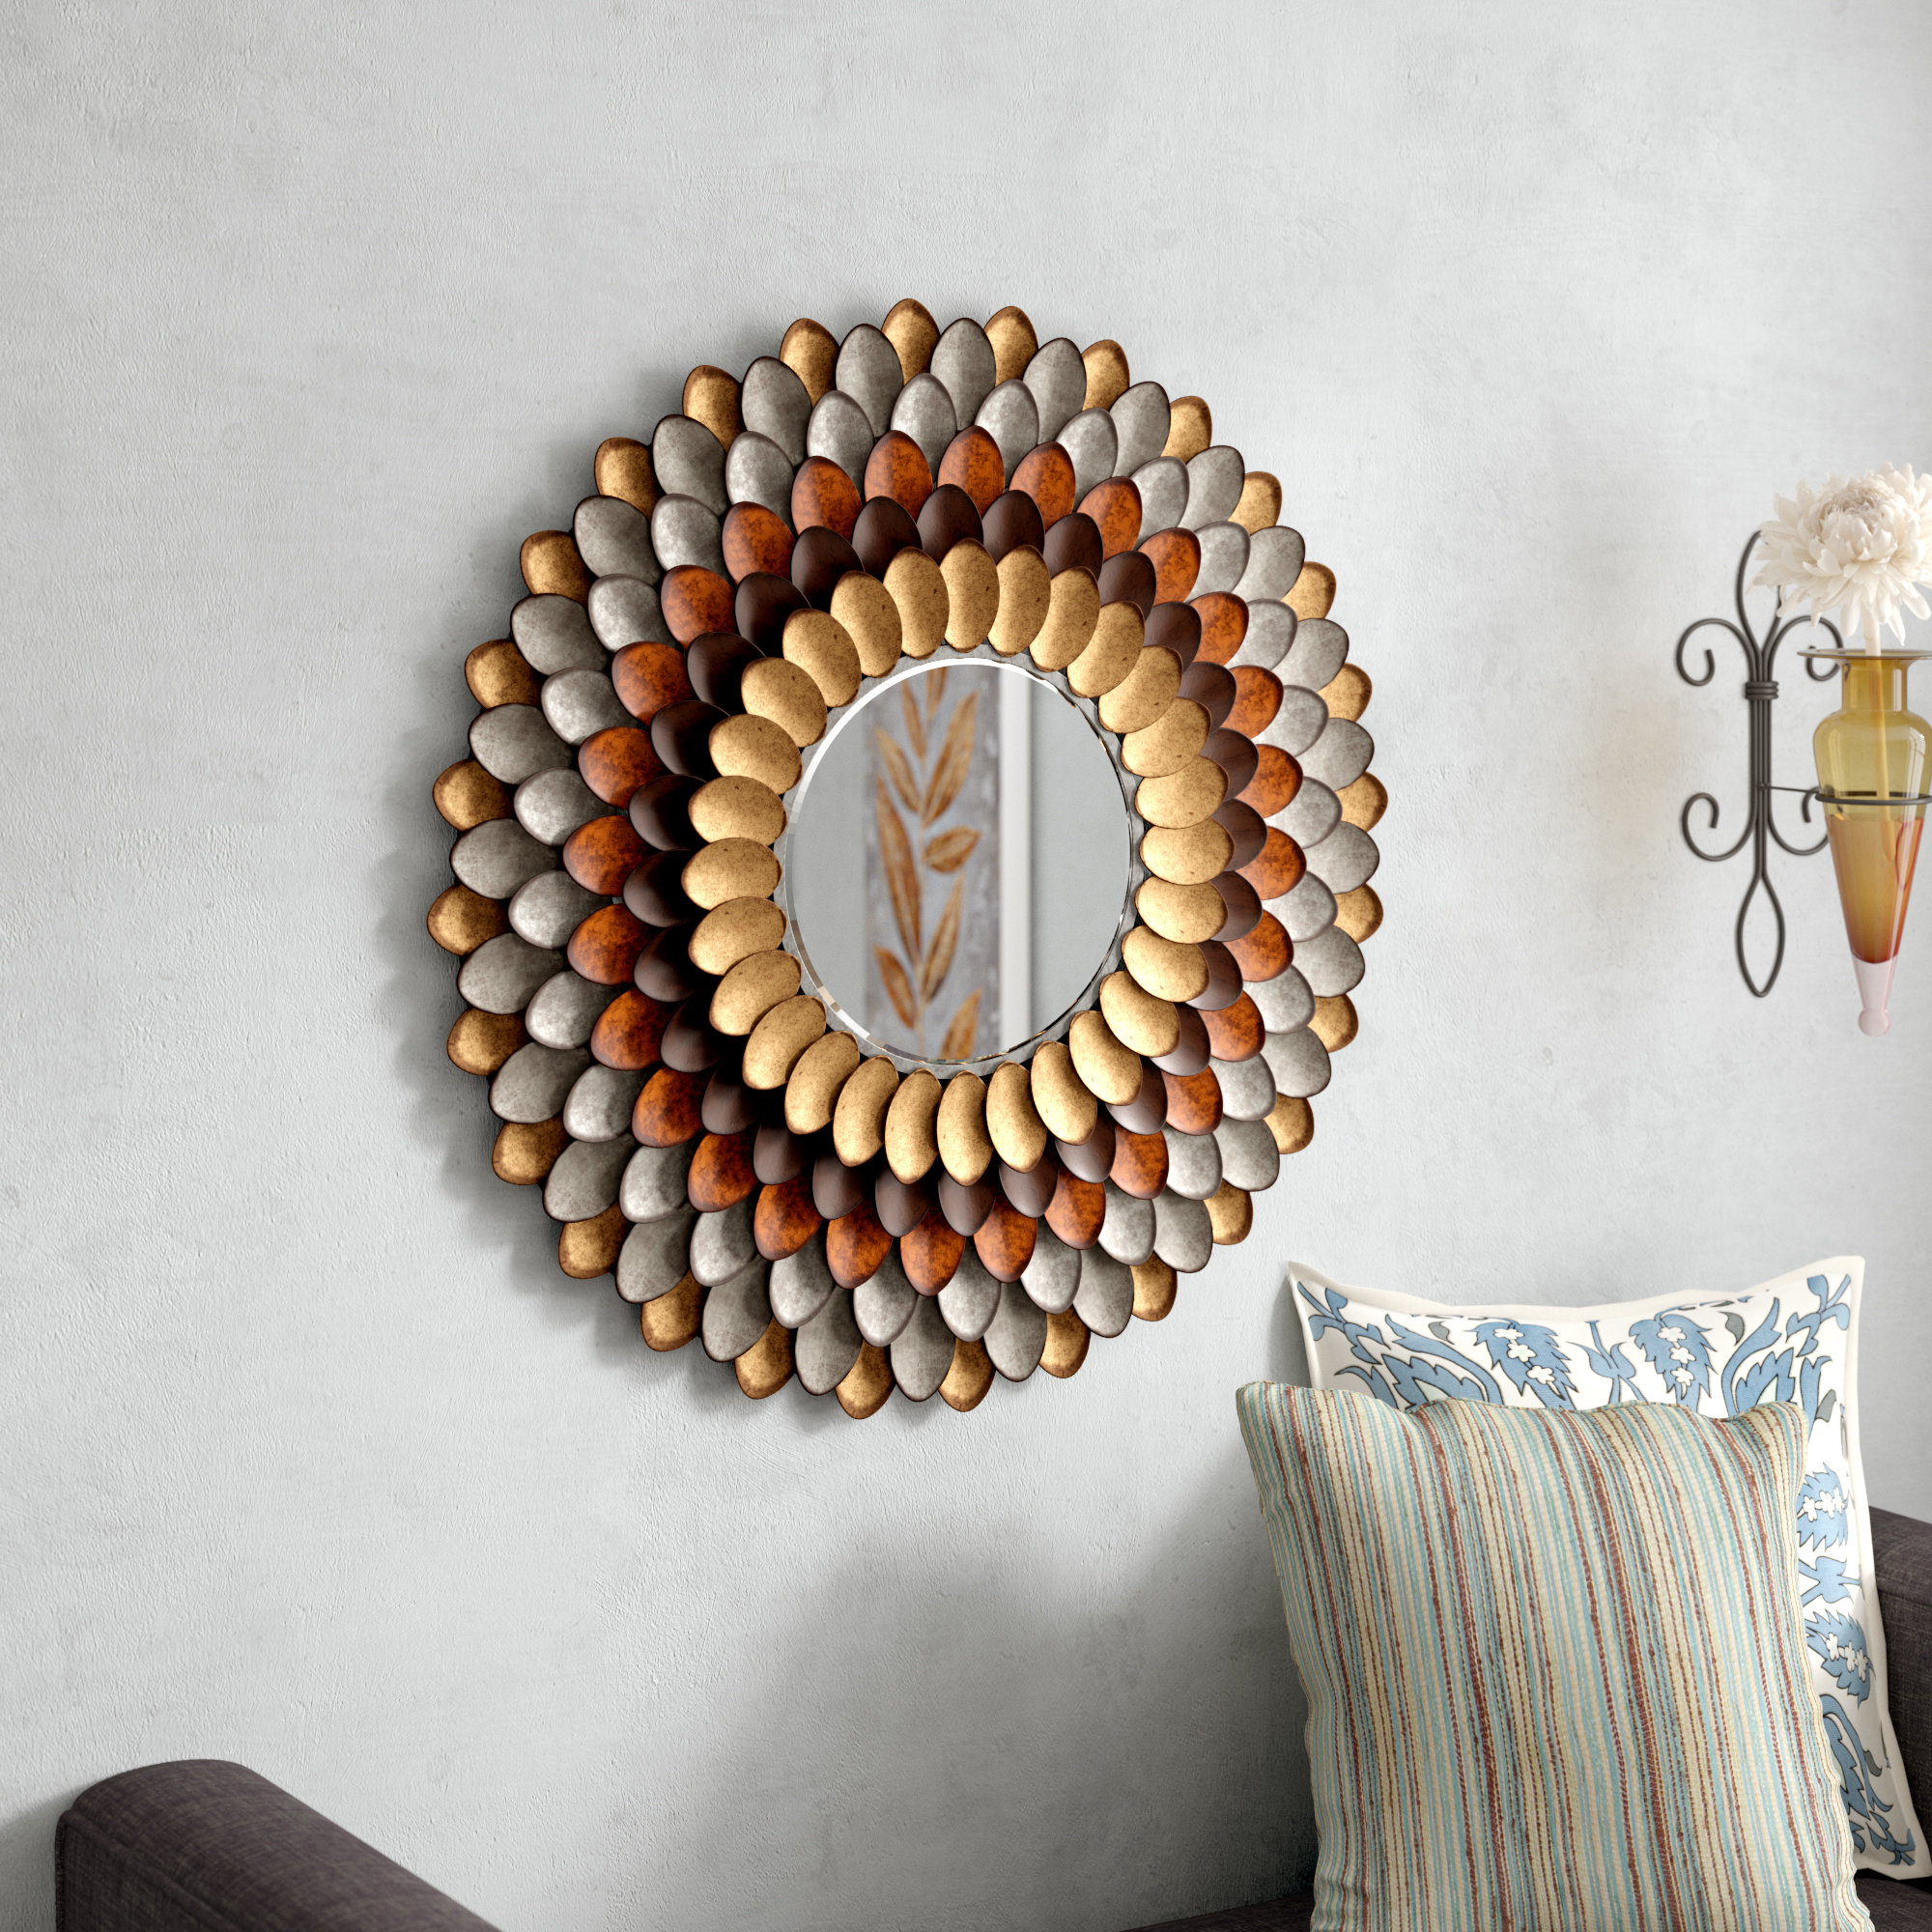 Decorative Round Wall Mirror For Decorative Round Wall Mirrors (Image 8 of 20)